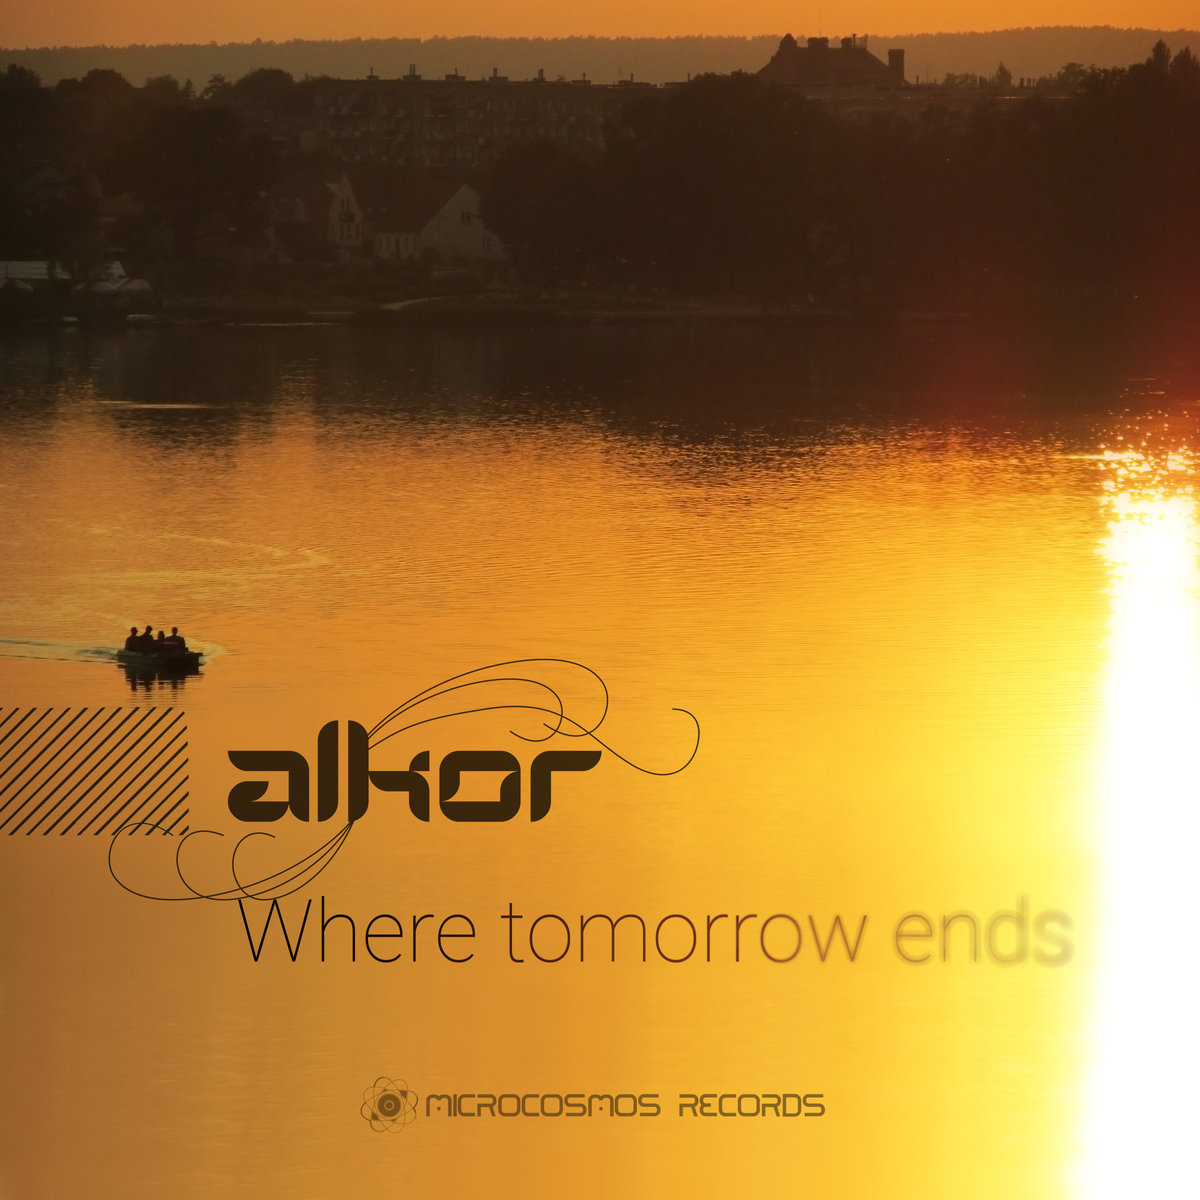 Alkor - Dry Fields @ 'Where Tomorrow Ends' album (ambient, chill-out)